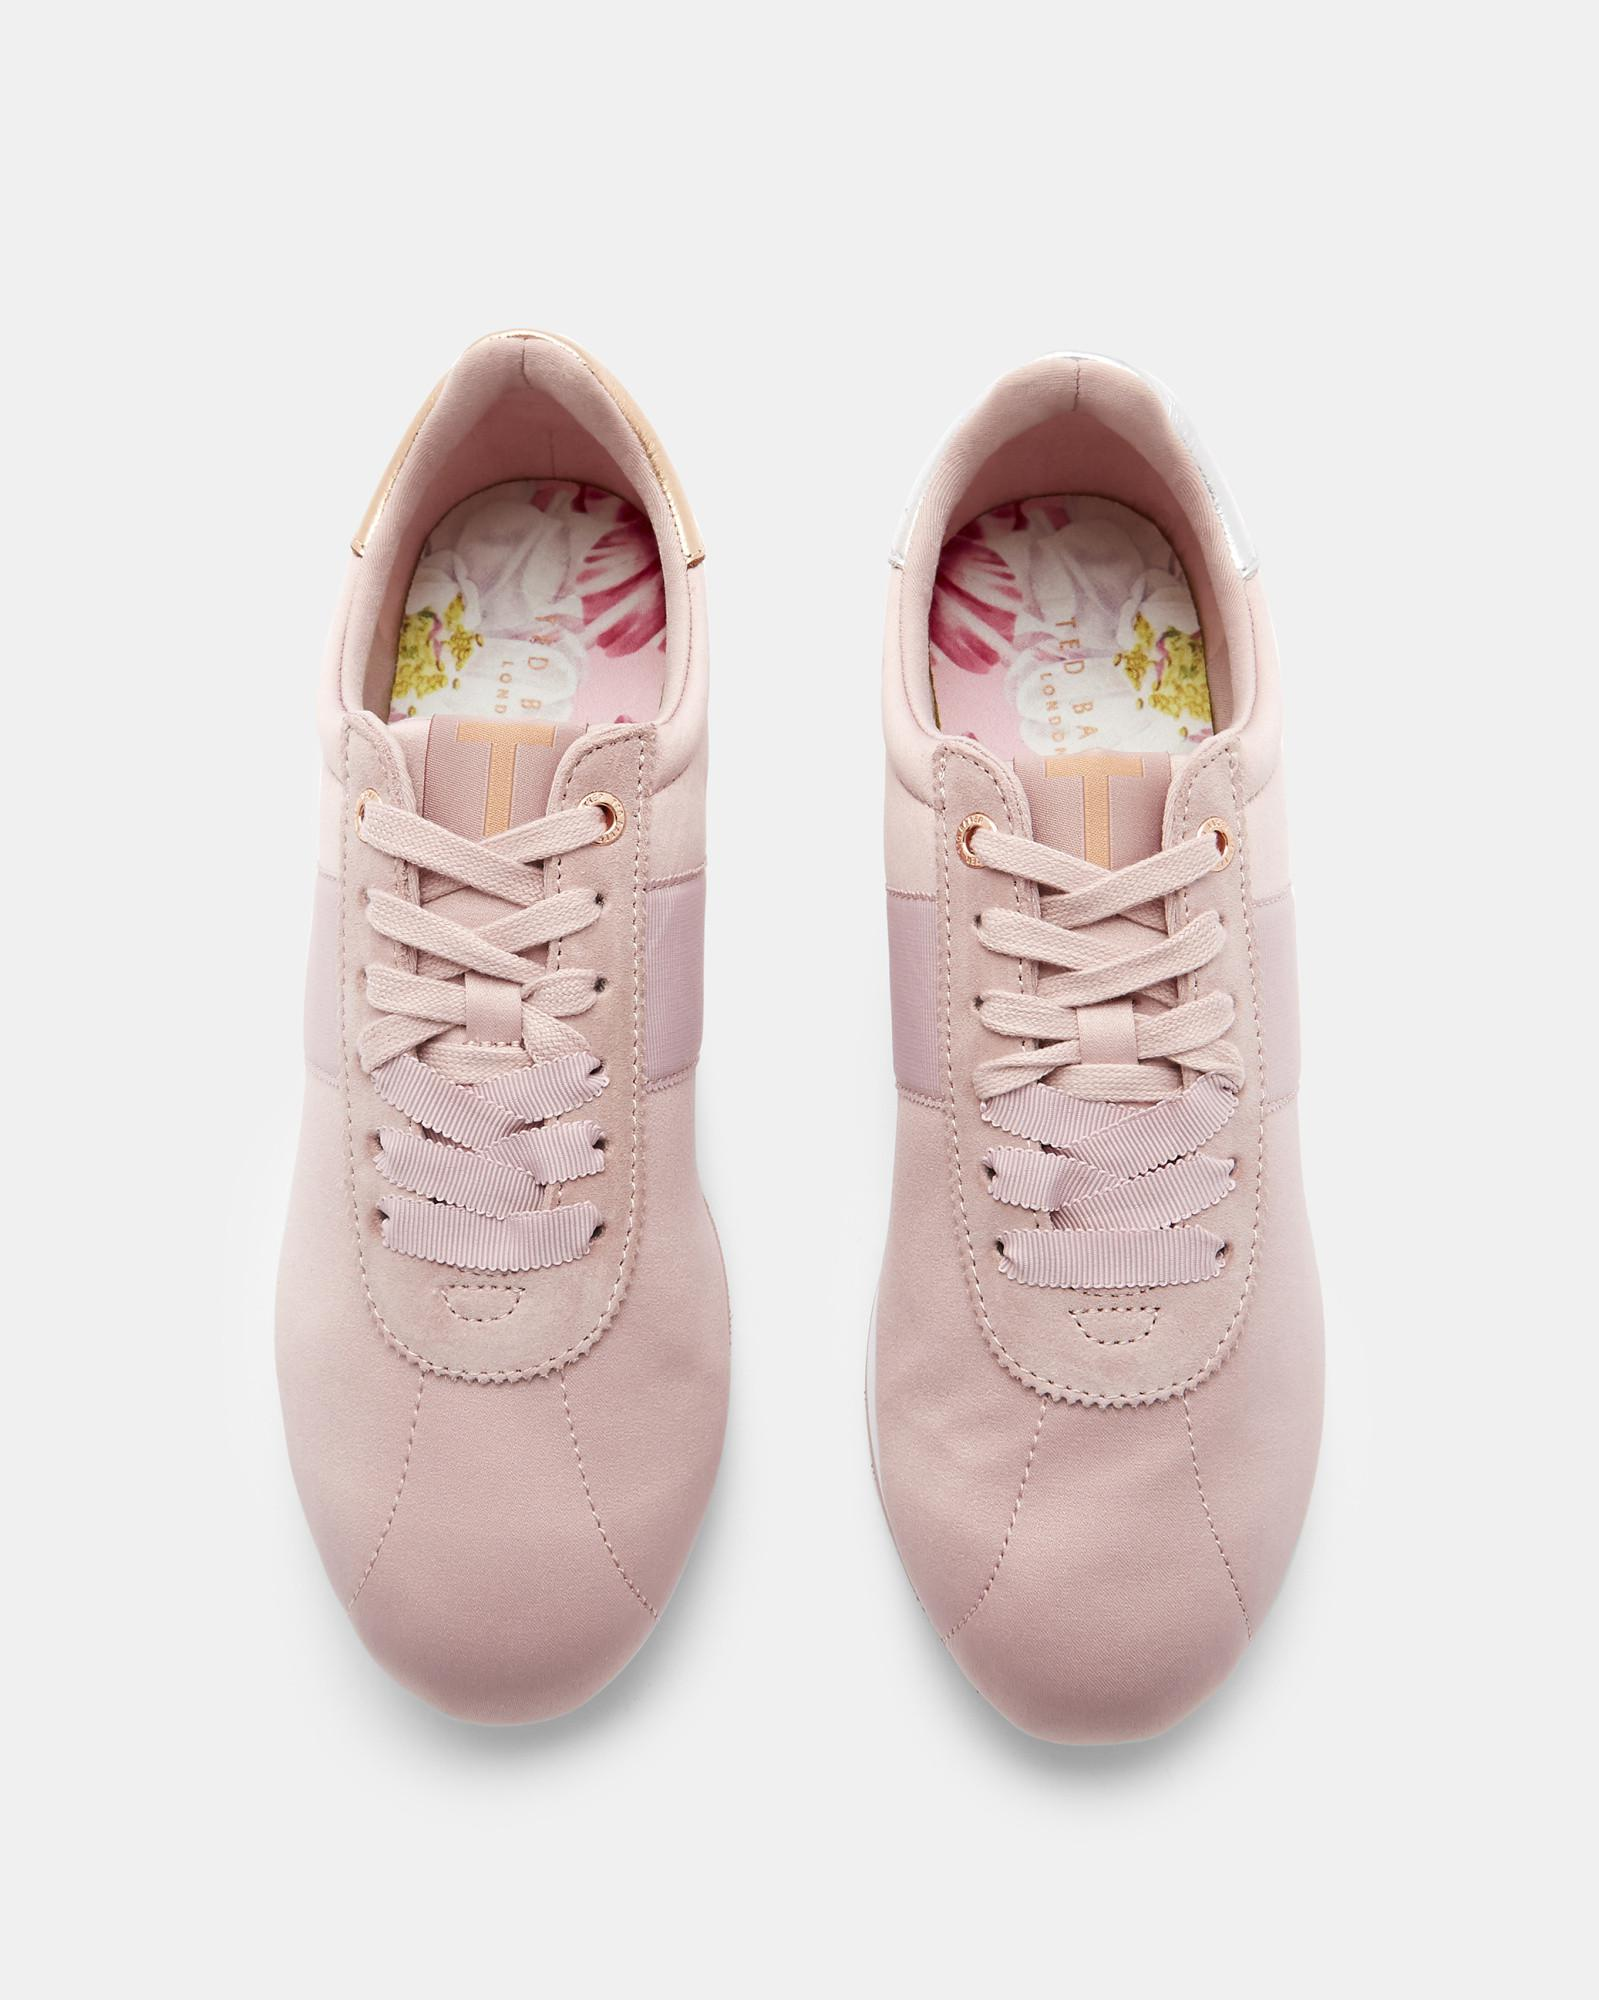 3c85592d5 Lyst - Ted Baker Retro Runner Trainers in Pink